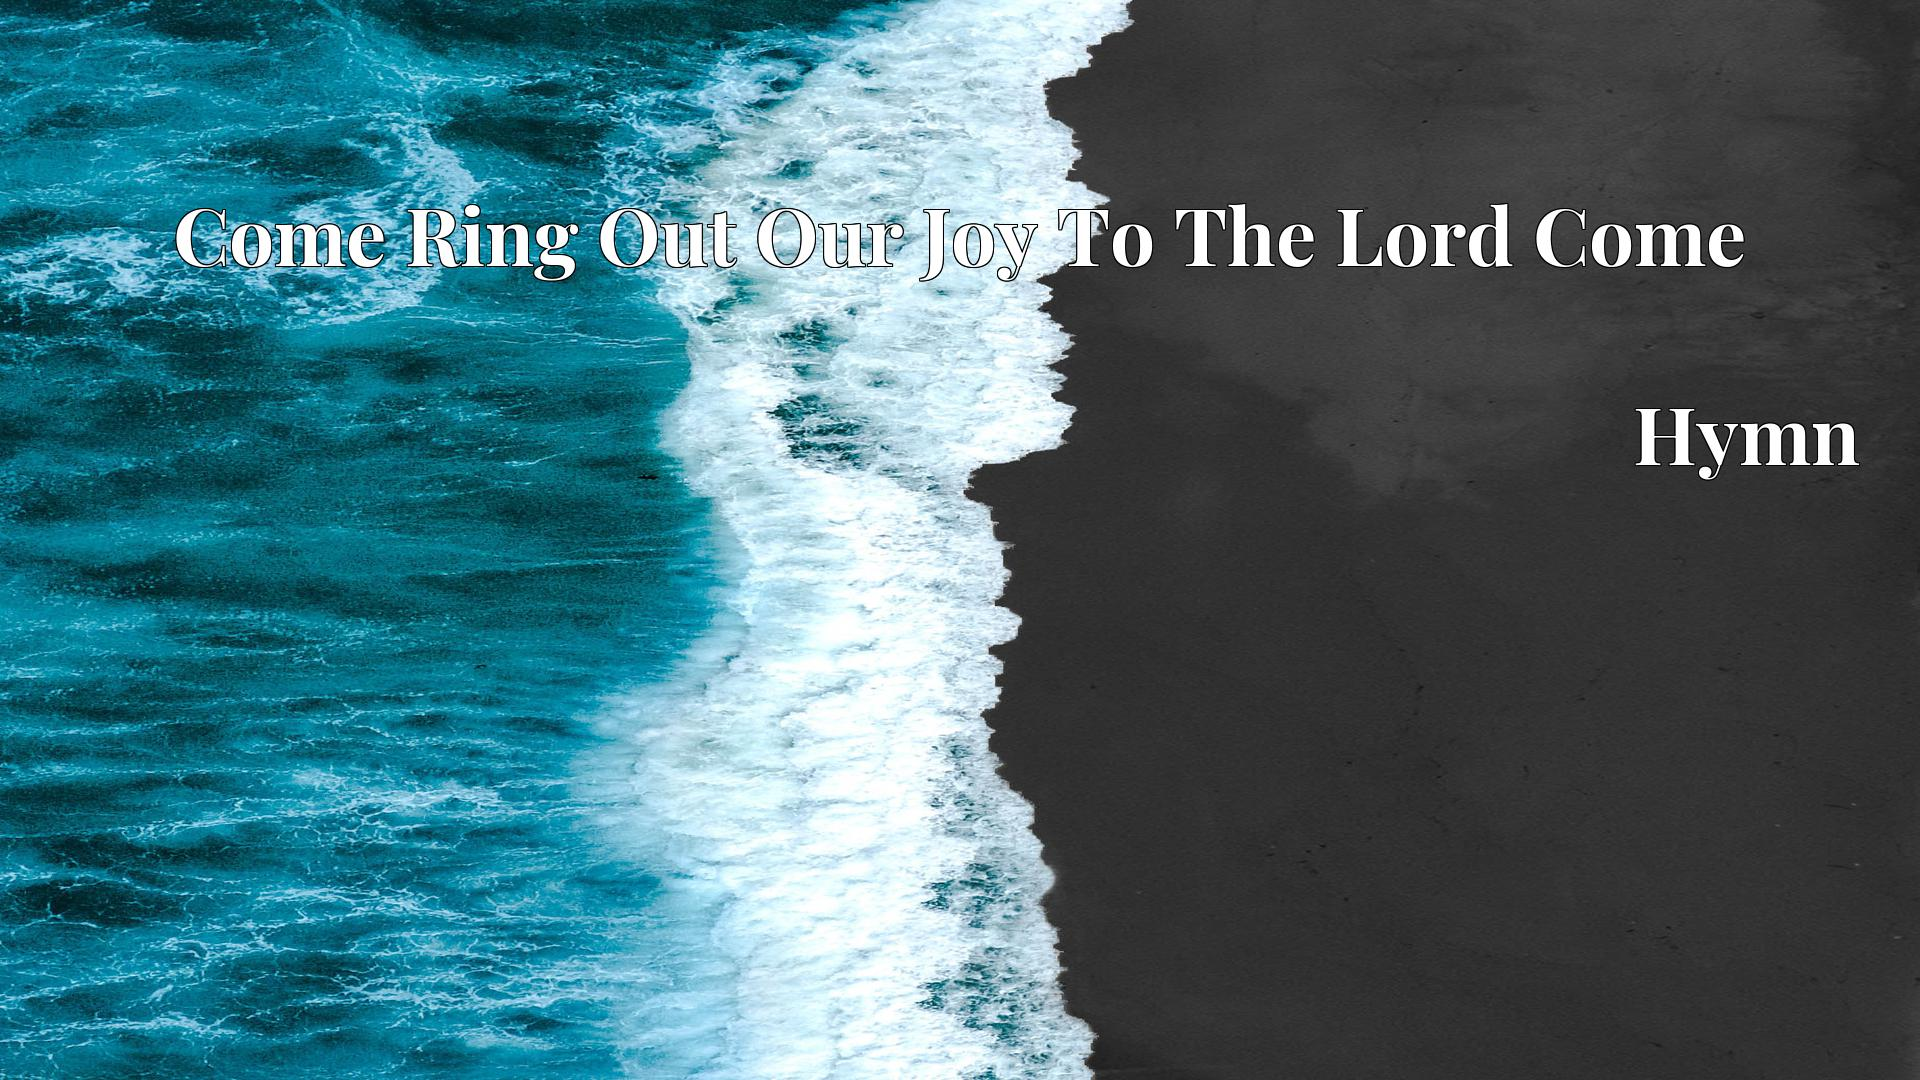 Come Ring Out Our Joy To The Lord Come - Hymn